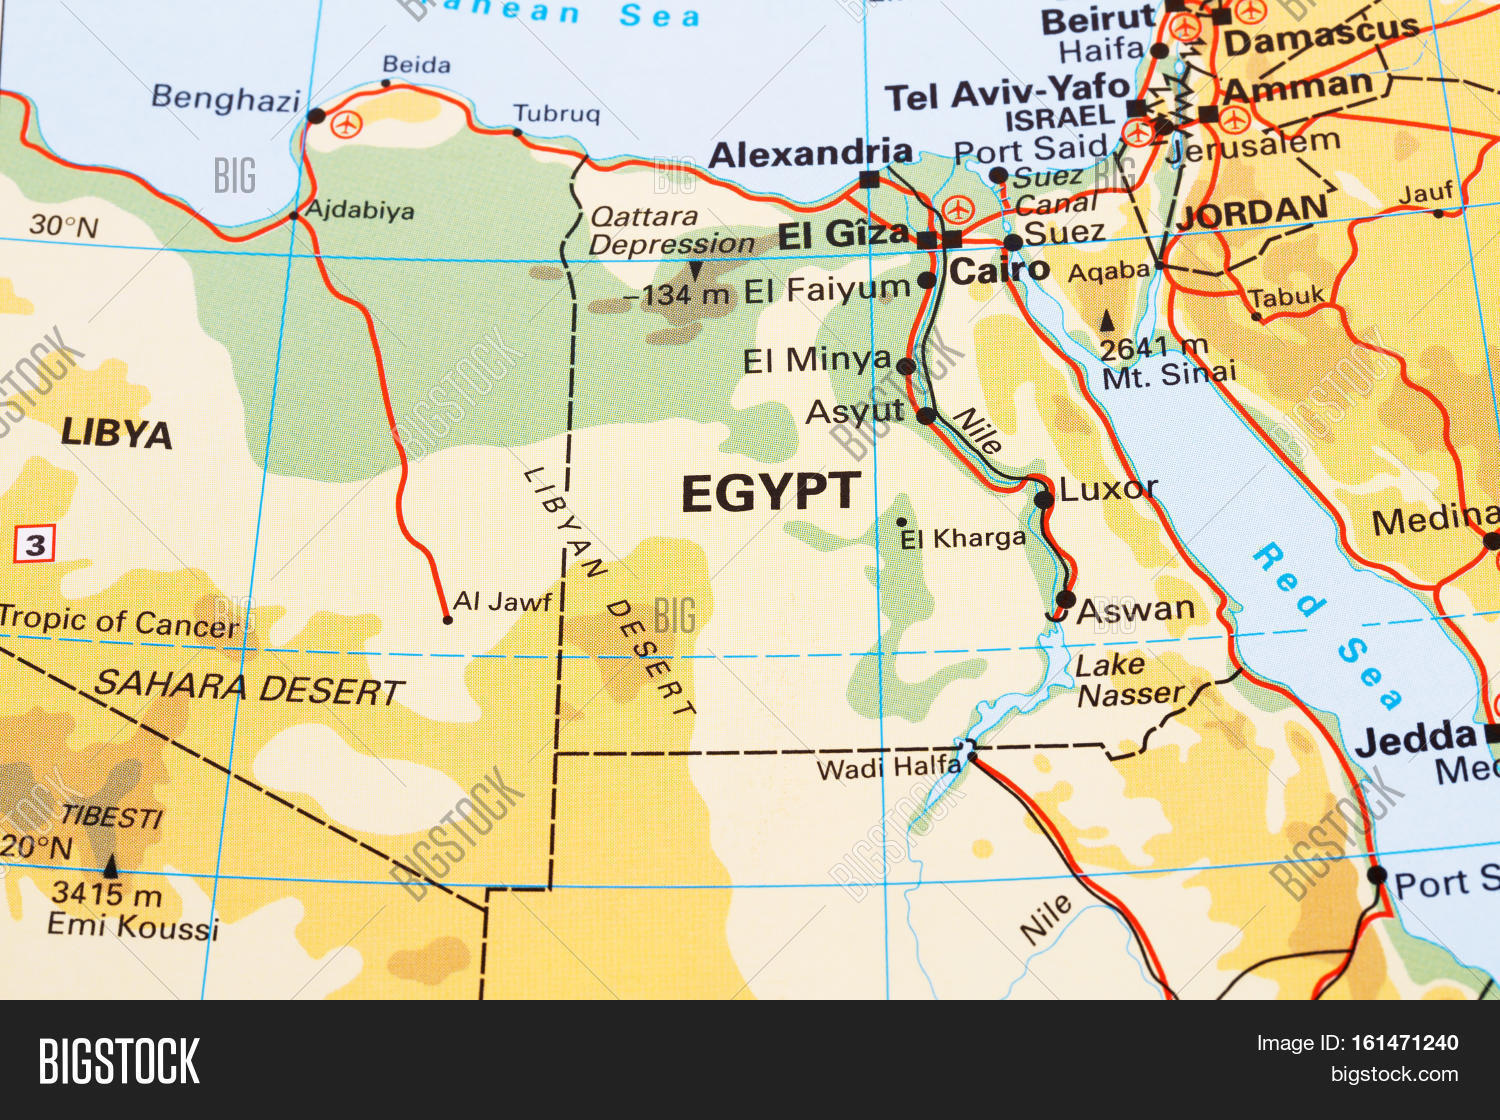 Egypt physical map horizontal close image photo bigstock egypt physical map horizontal close up picture gumiabroncs Choice Image